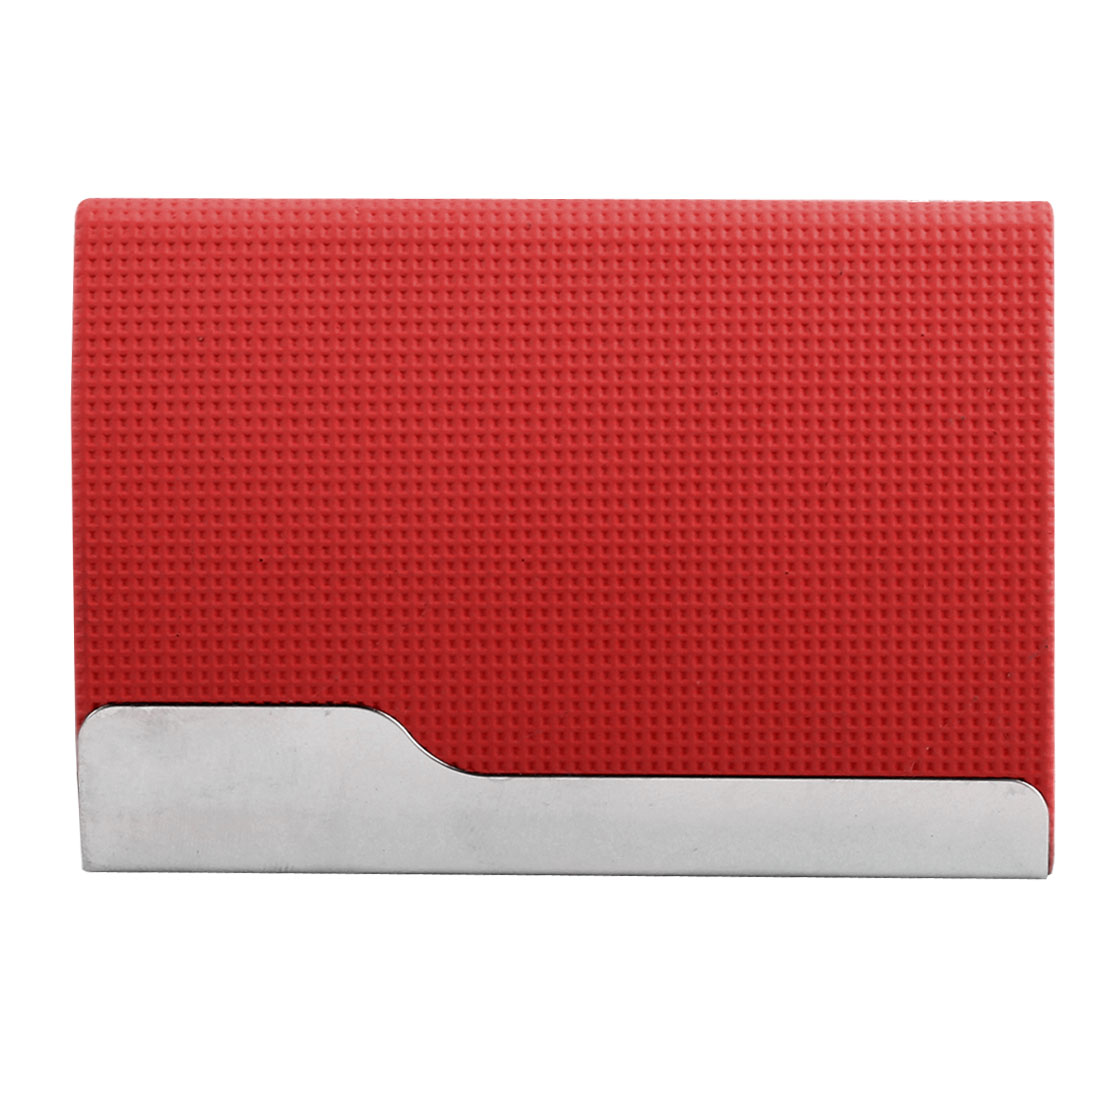 Outdoor Magnetic Shut Business Name Credit ID Card Case Box Holder Container Red